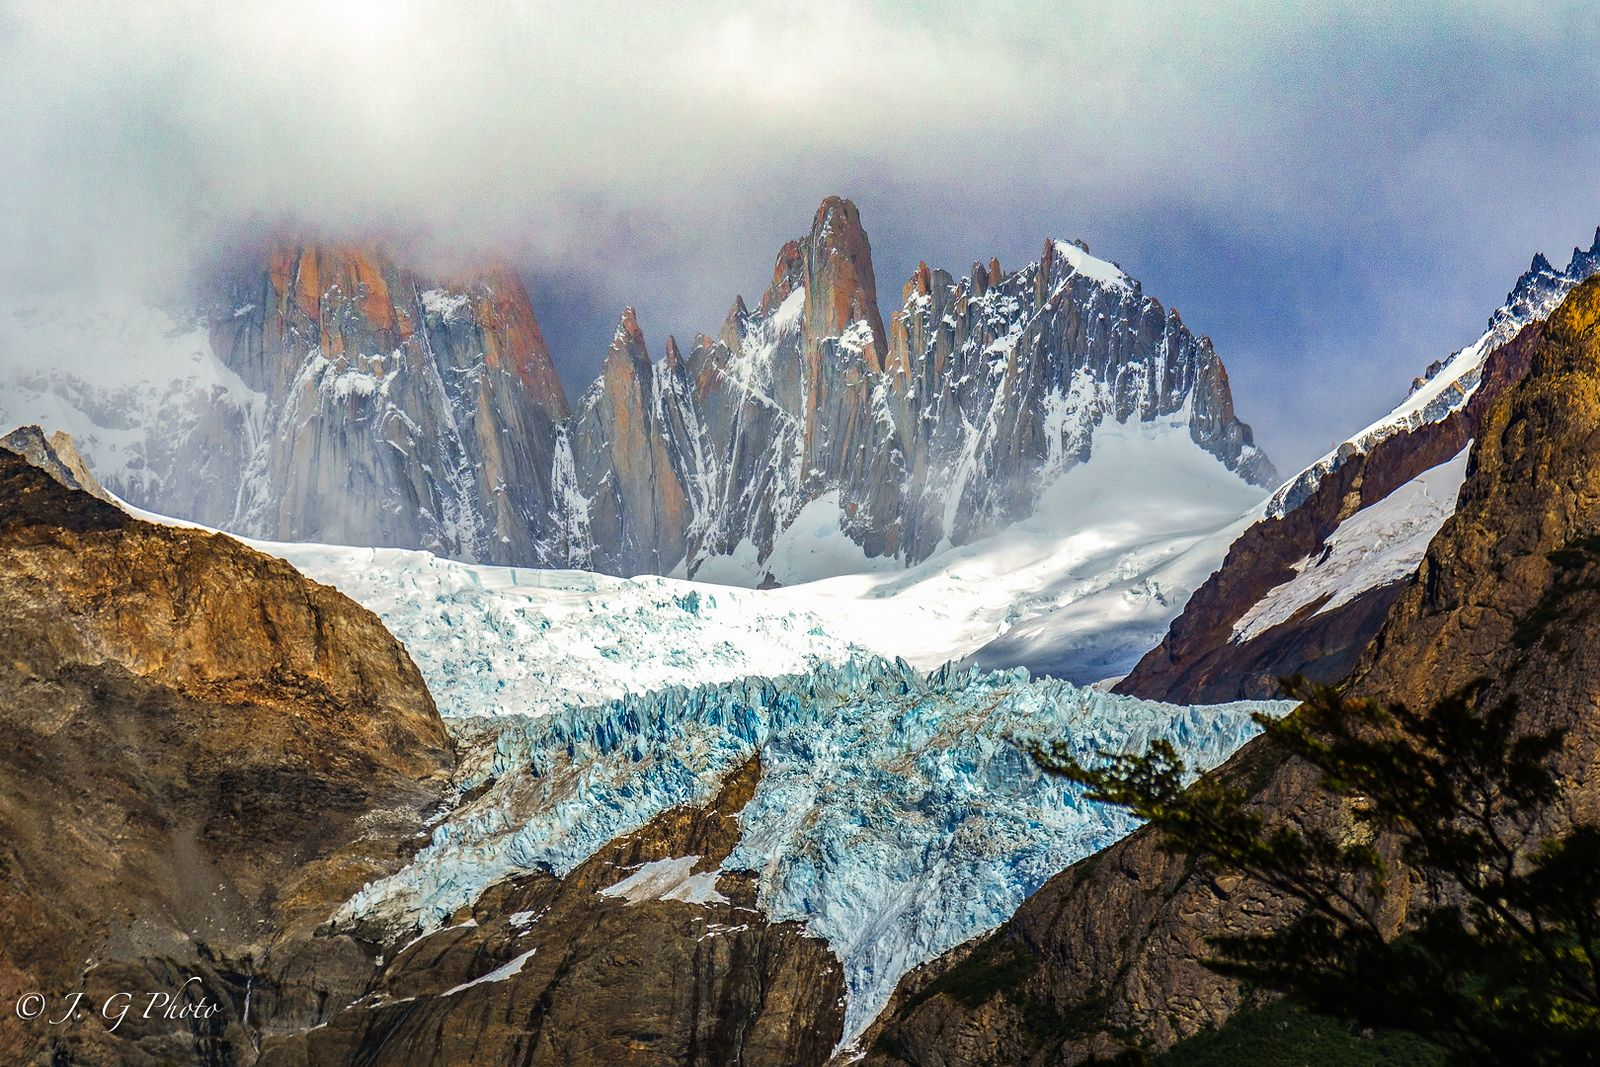 Landscape Photo of the Day – Piedra Blancas Glacier, Patagonia by Jin Gong  On a daily basis we scout the wonderful world of internet to discover and share with you some of the most outstanding landscape images from around the world. Let us do the leg work, you simply relax and enjoy the ride with us. Follow us and admire all these wonderful locations, never miss a... https://f11news.com/07/07/2017/landscape-photo-of-the-day-piedra-blancas-glacier-patagonia-by-jin-gong